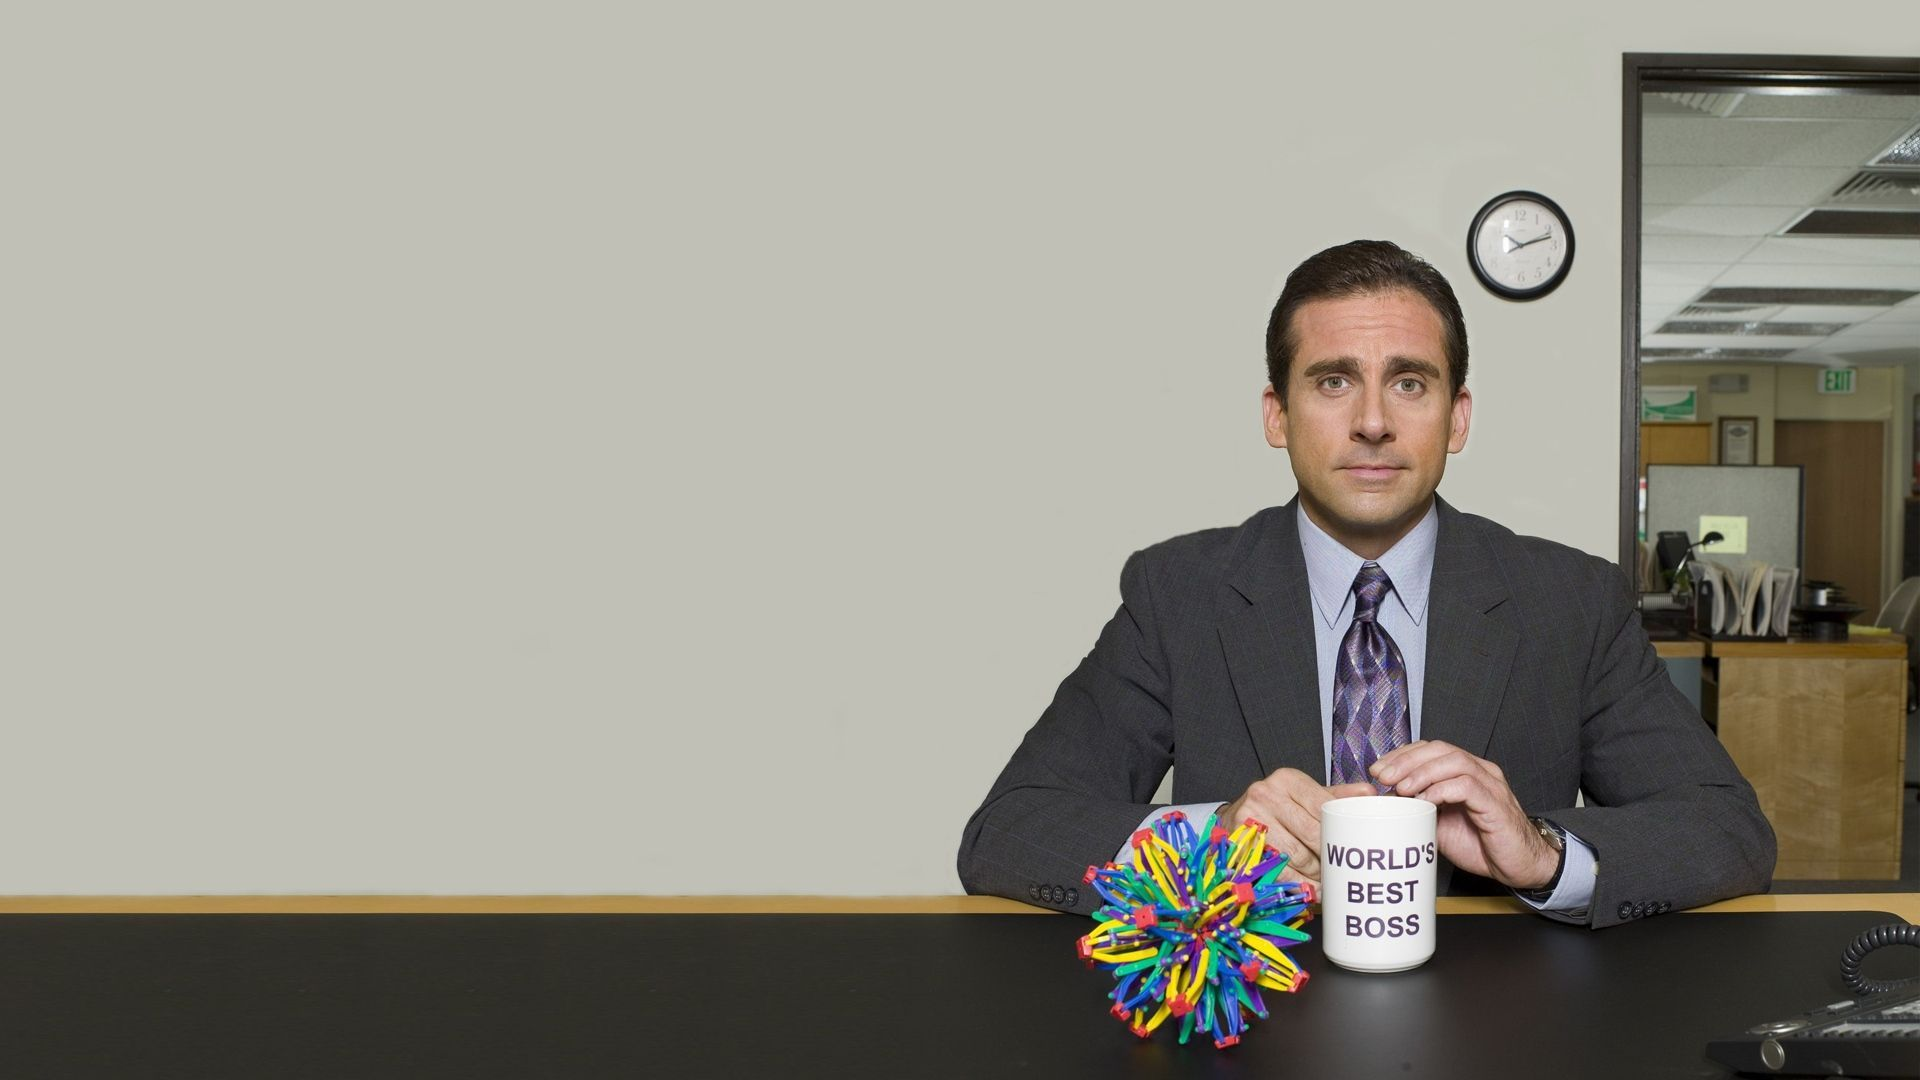 The Office Wallpapers - Top Free The Office Backgrounds ...